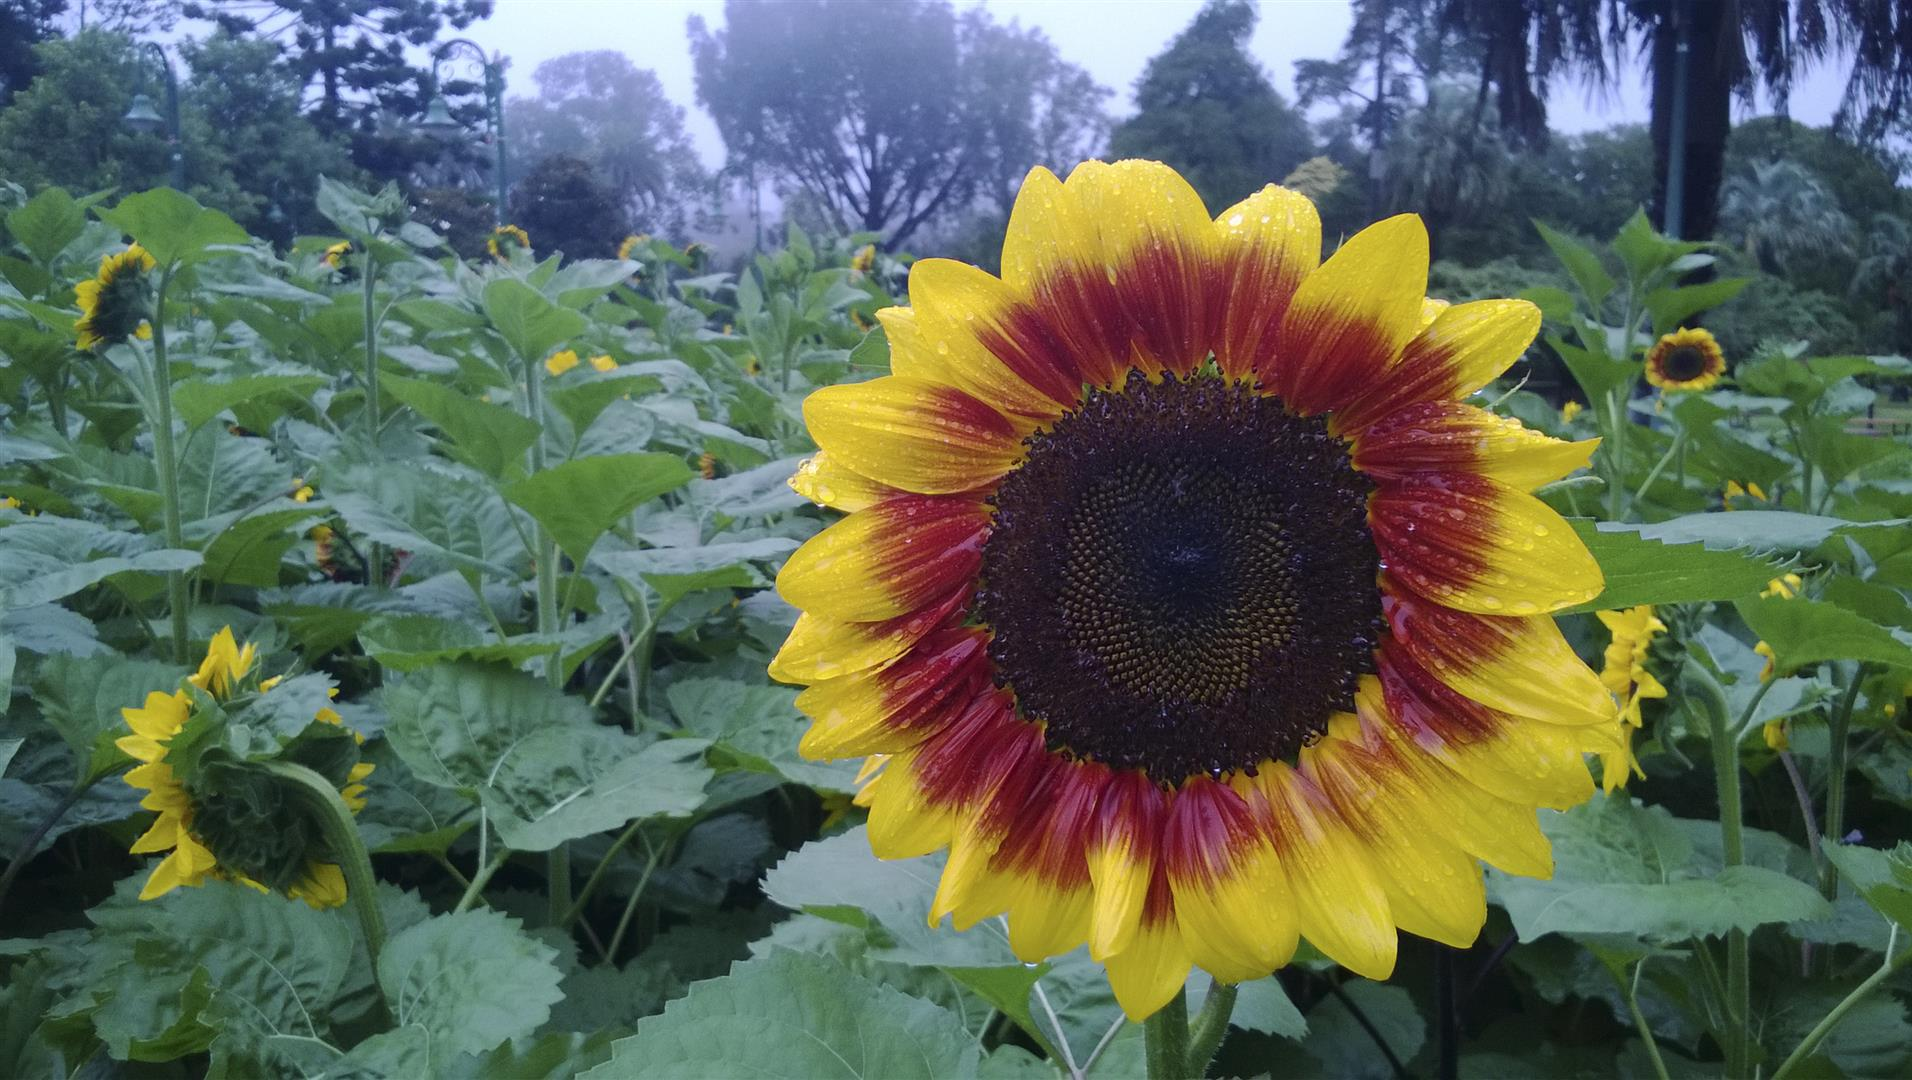 Sunflowers, Queens Park Botanic Gardens 2014.